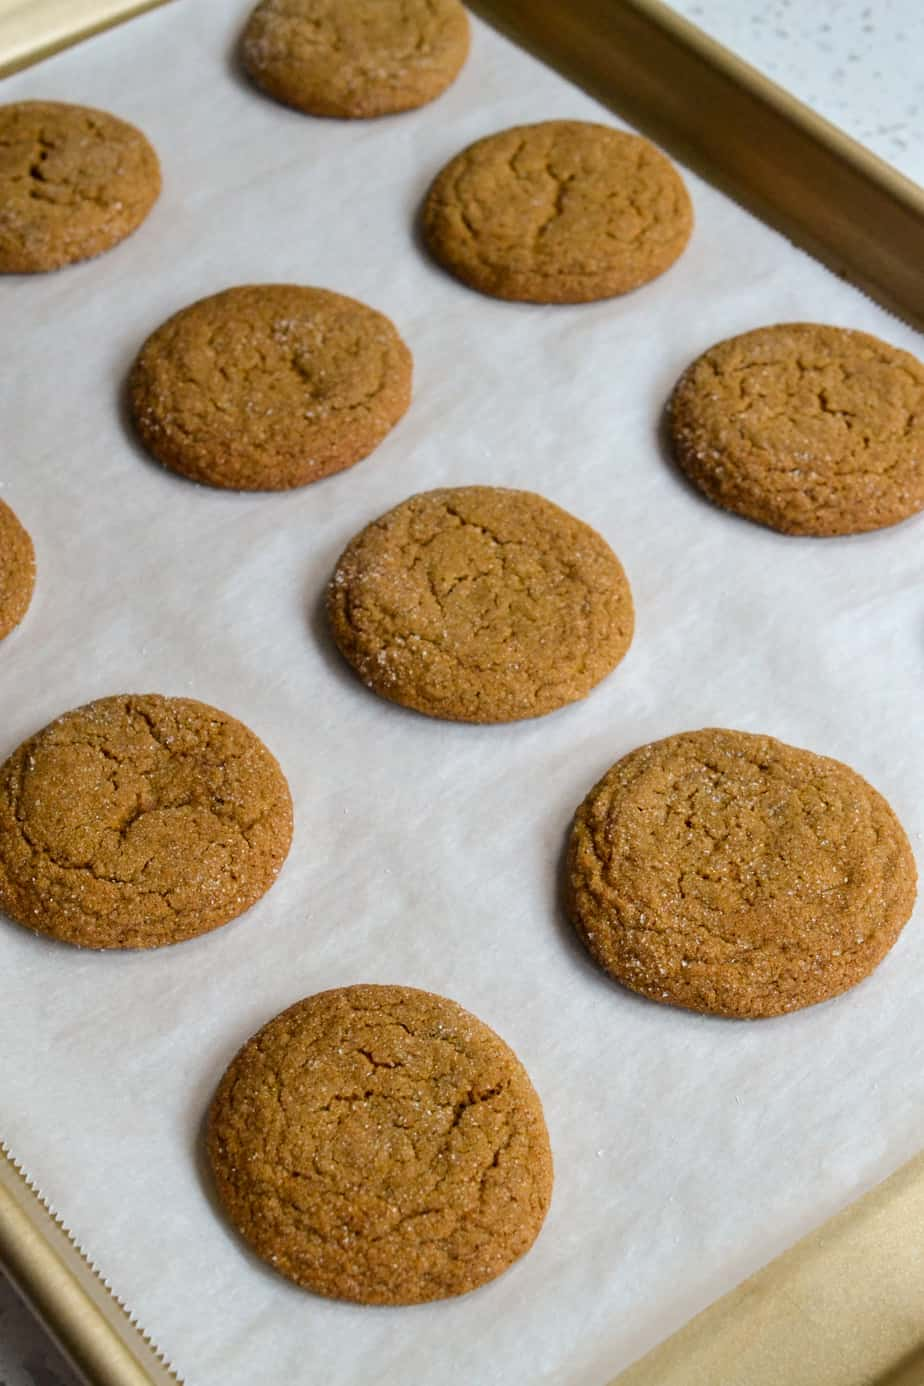 Bake the cookies in a preheated oven for about twelve minutes.